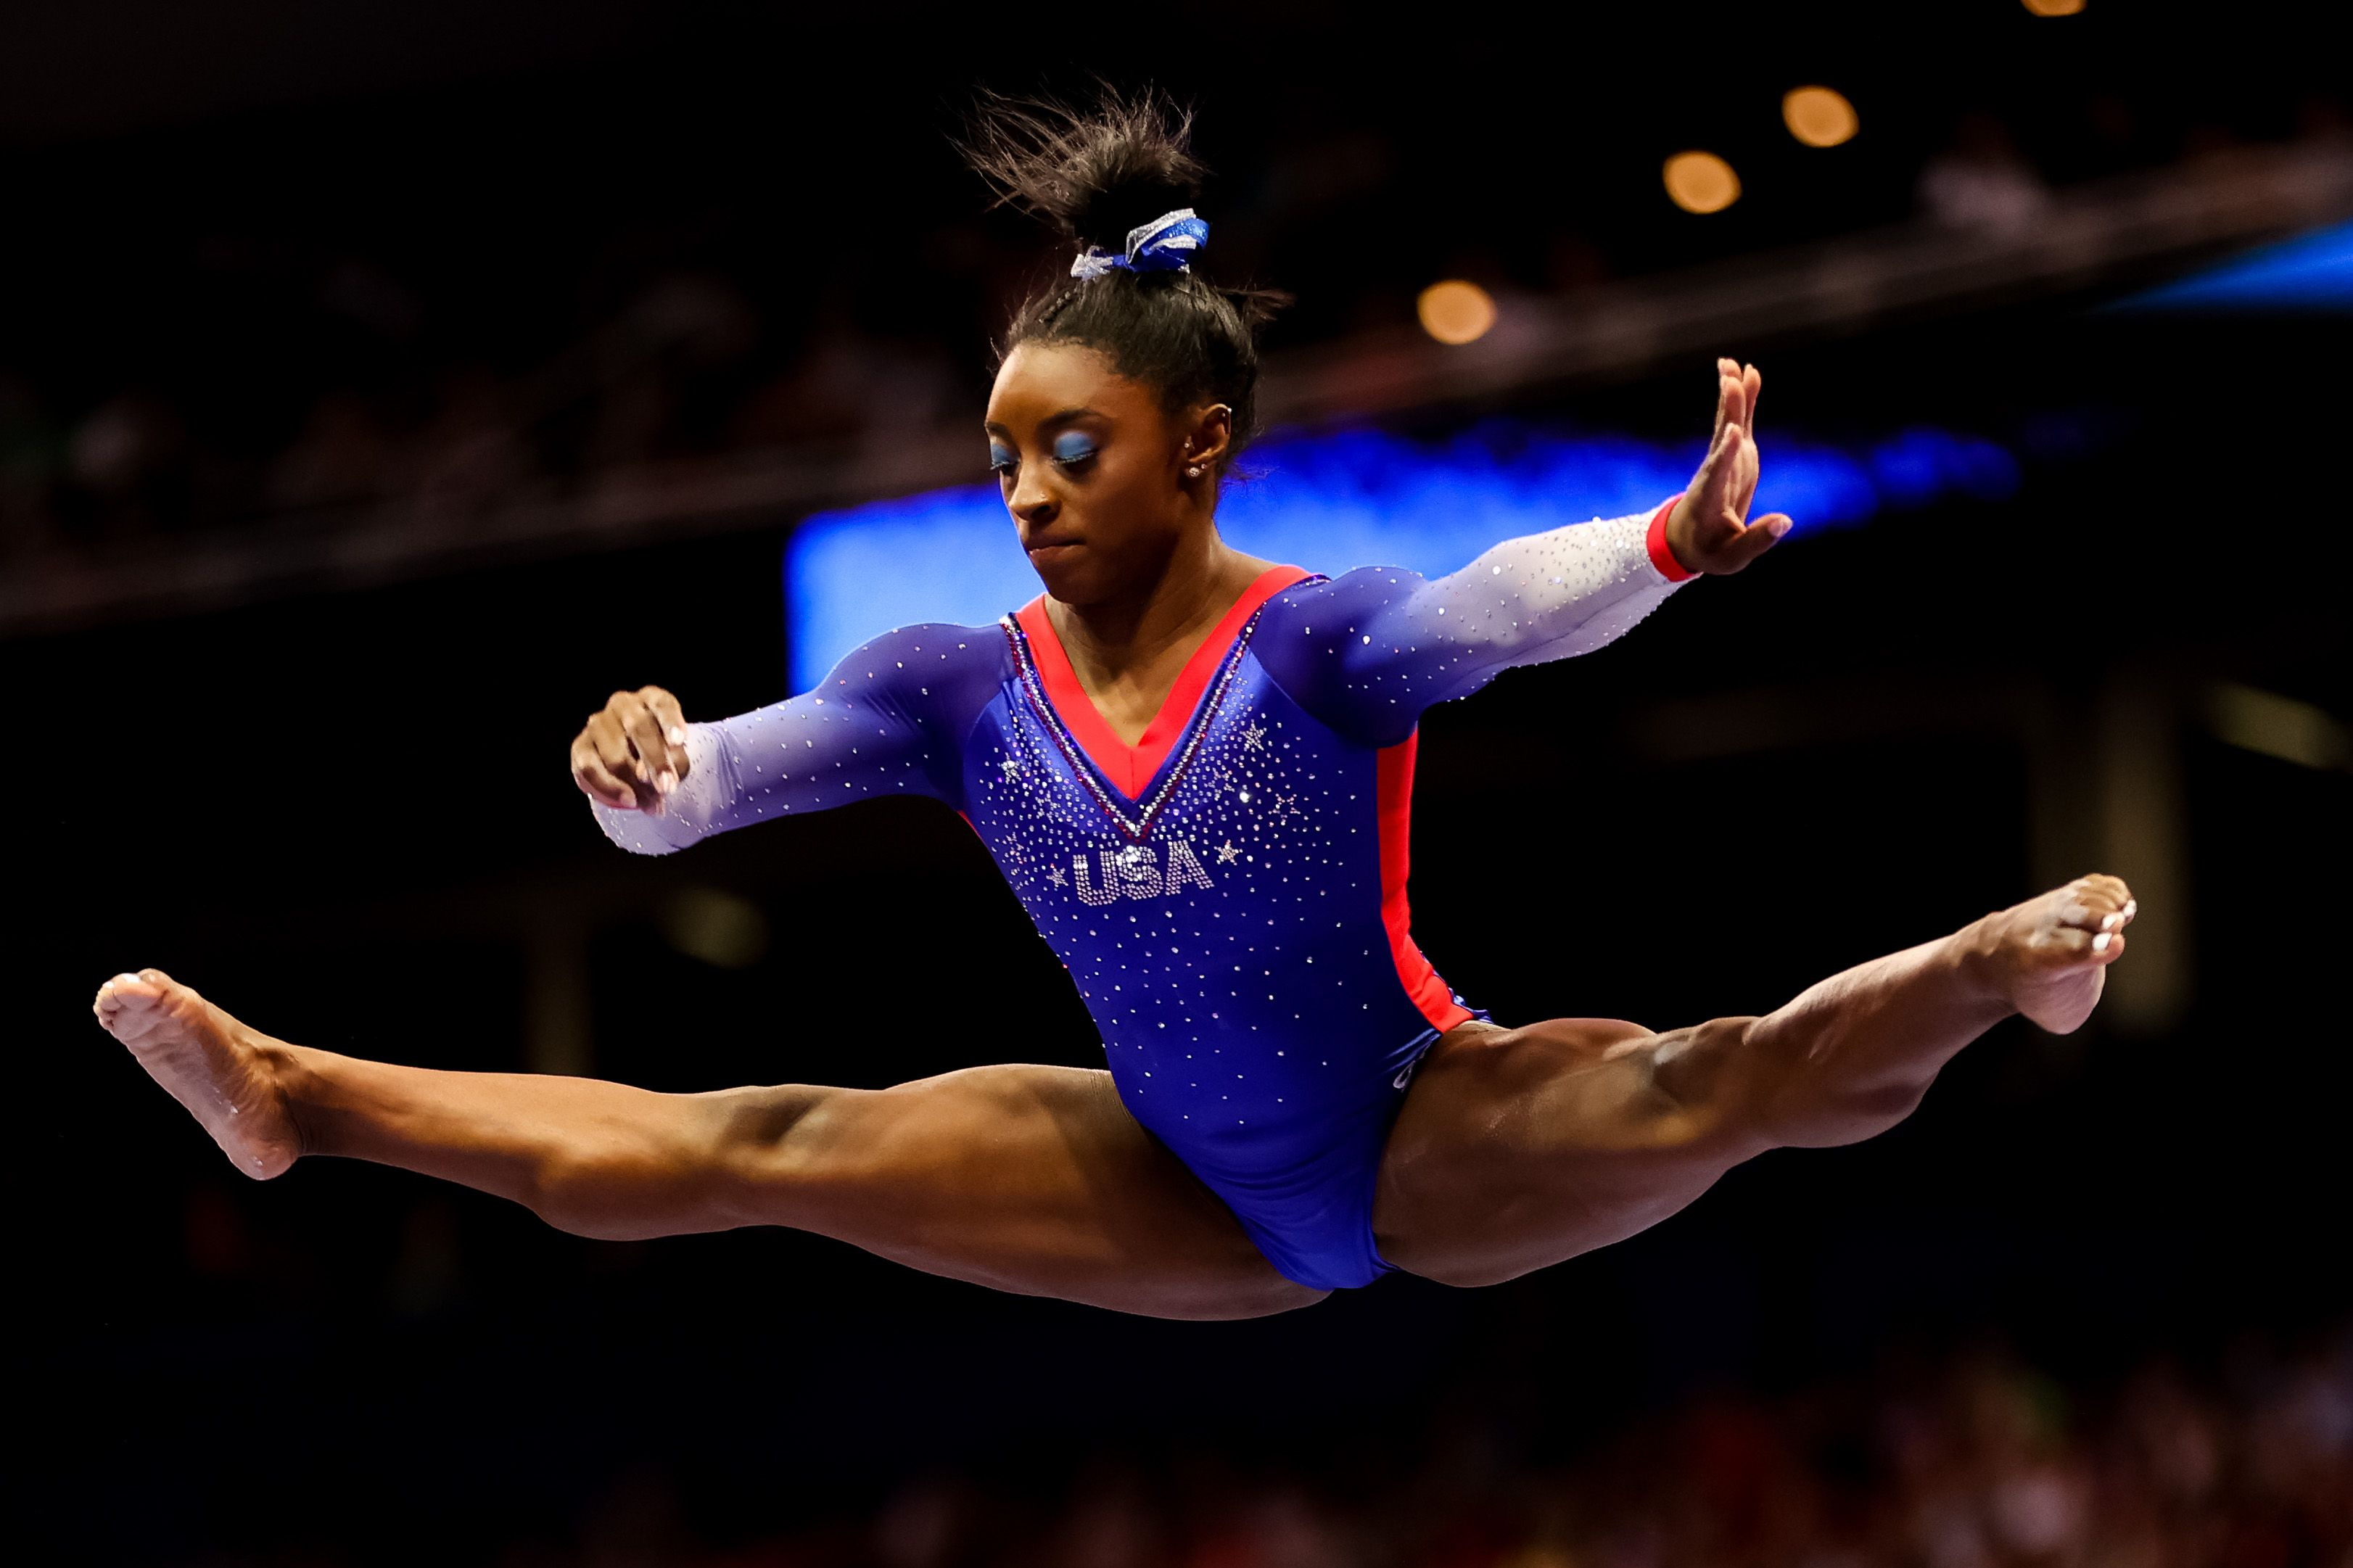 Watch Simone Biles' Gravity-Defying Floor Routine from Olympic Trials